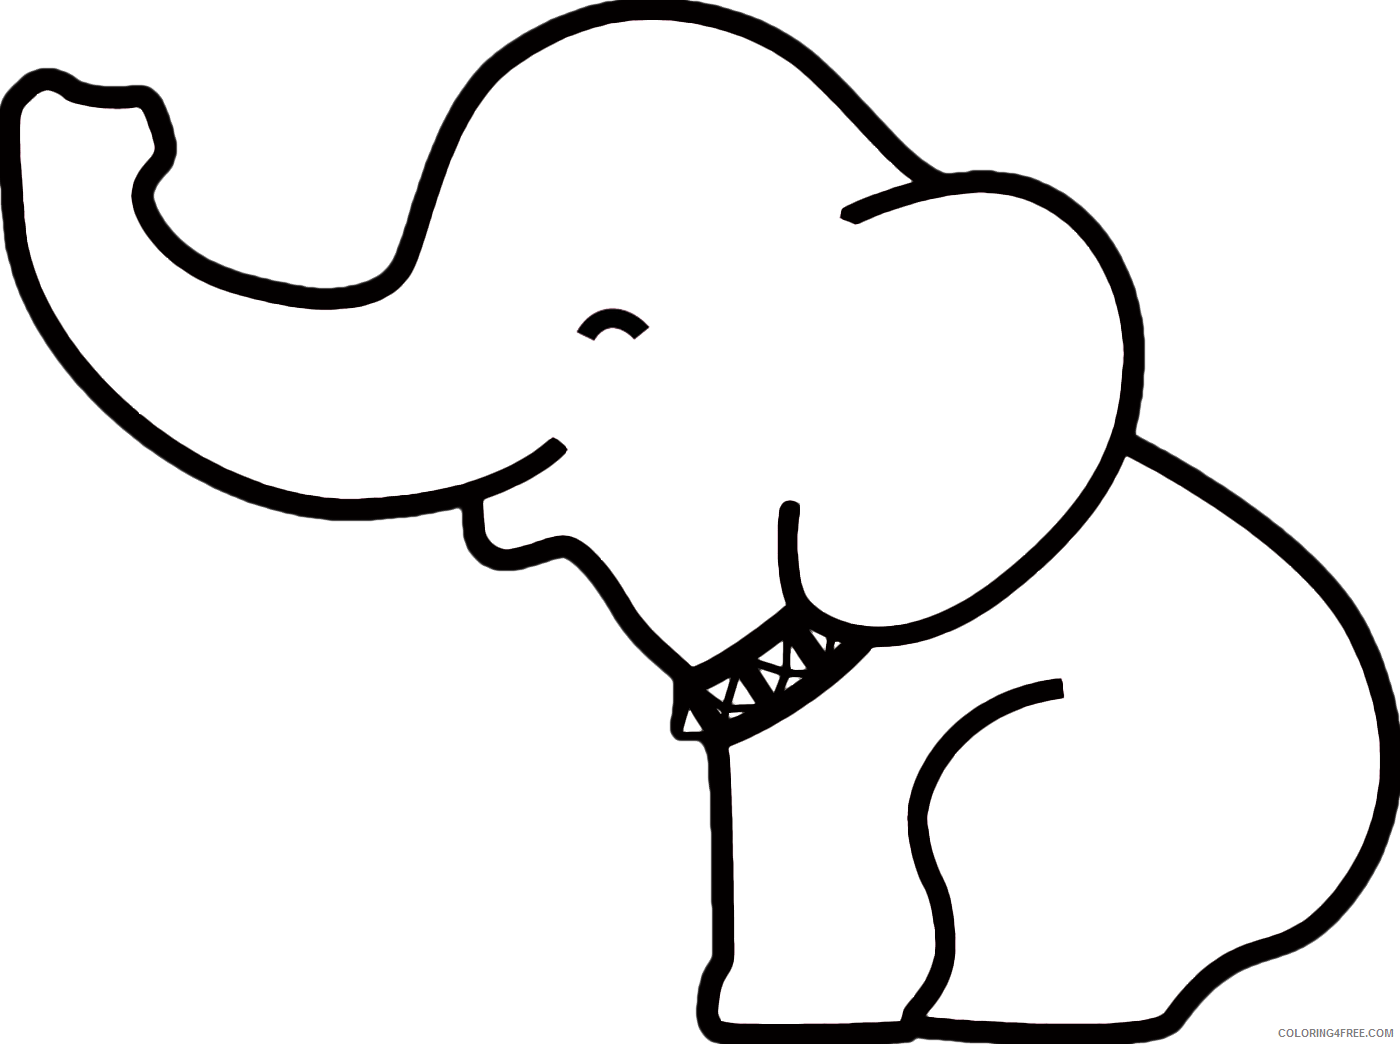 Elephant Outline Coloring Pages best elephant outline 3 png Printable Coloring4free